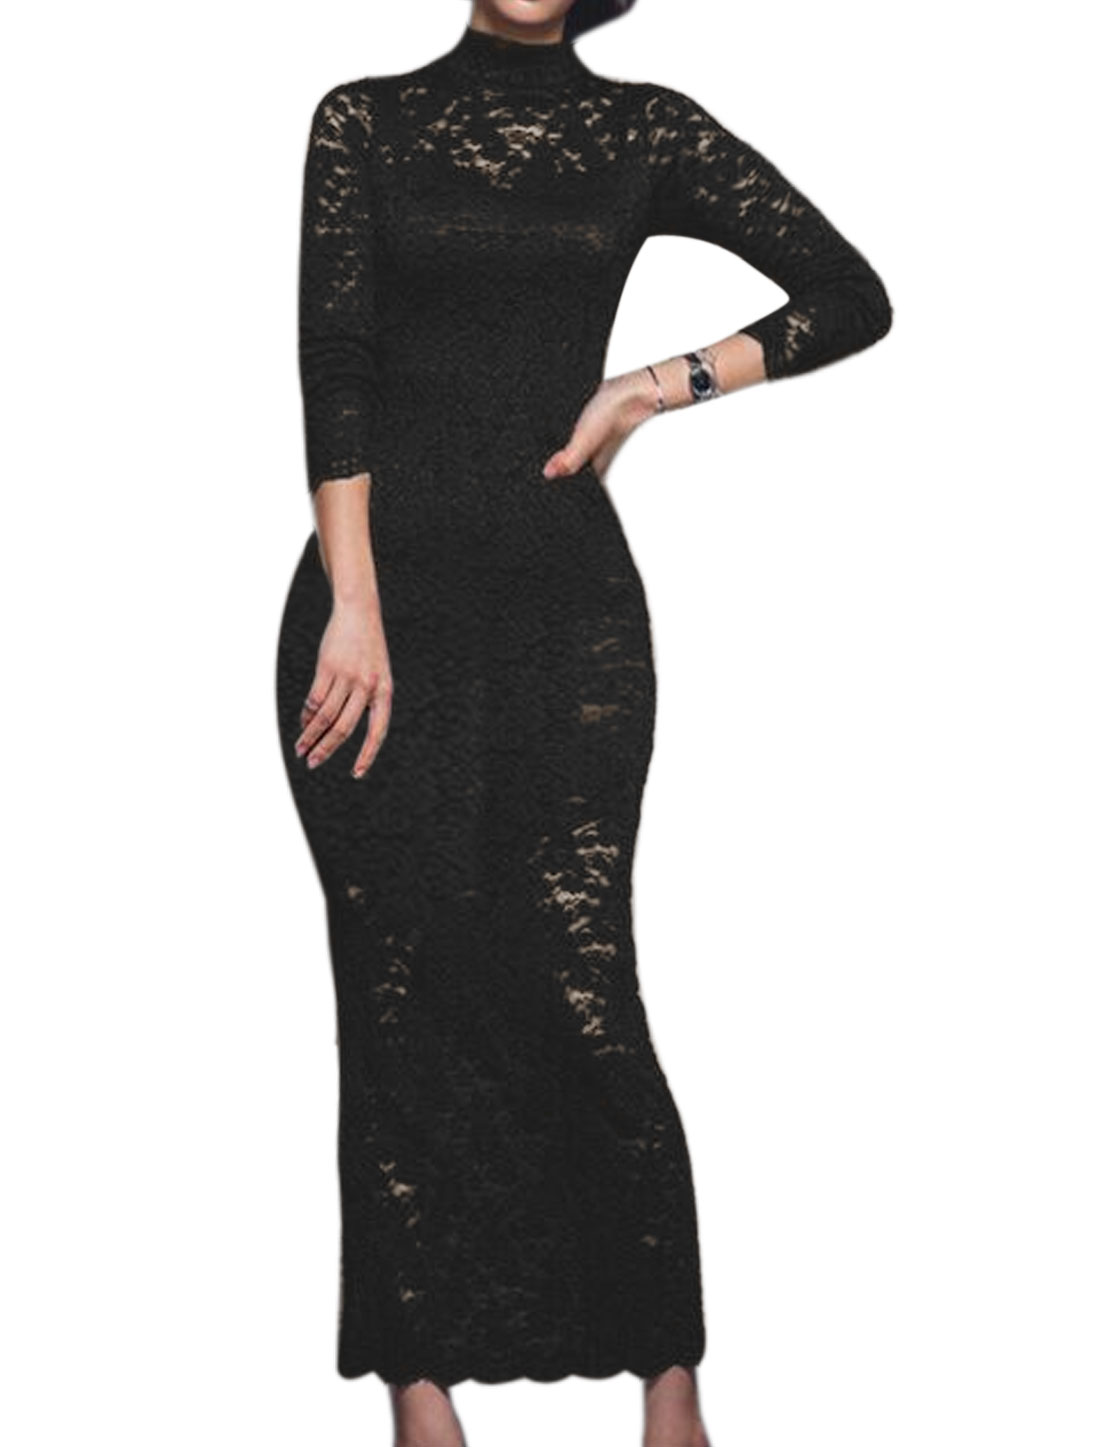 Women Floral Lace See Through Bodycon Dress Black XS